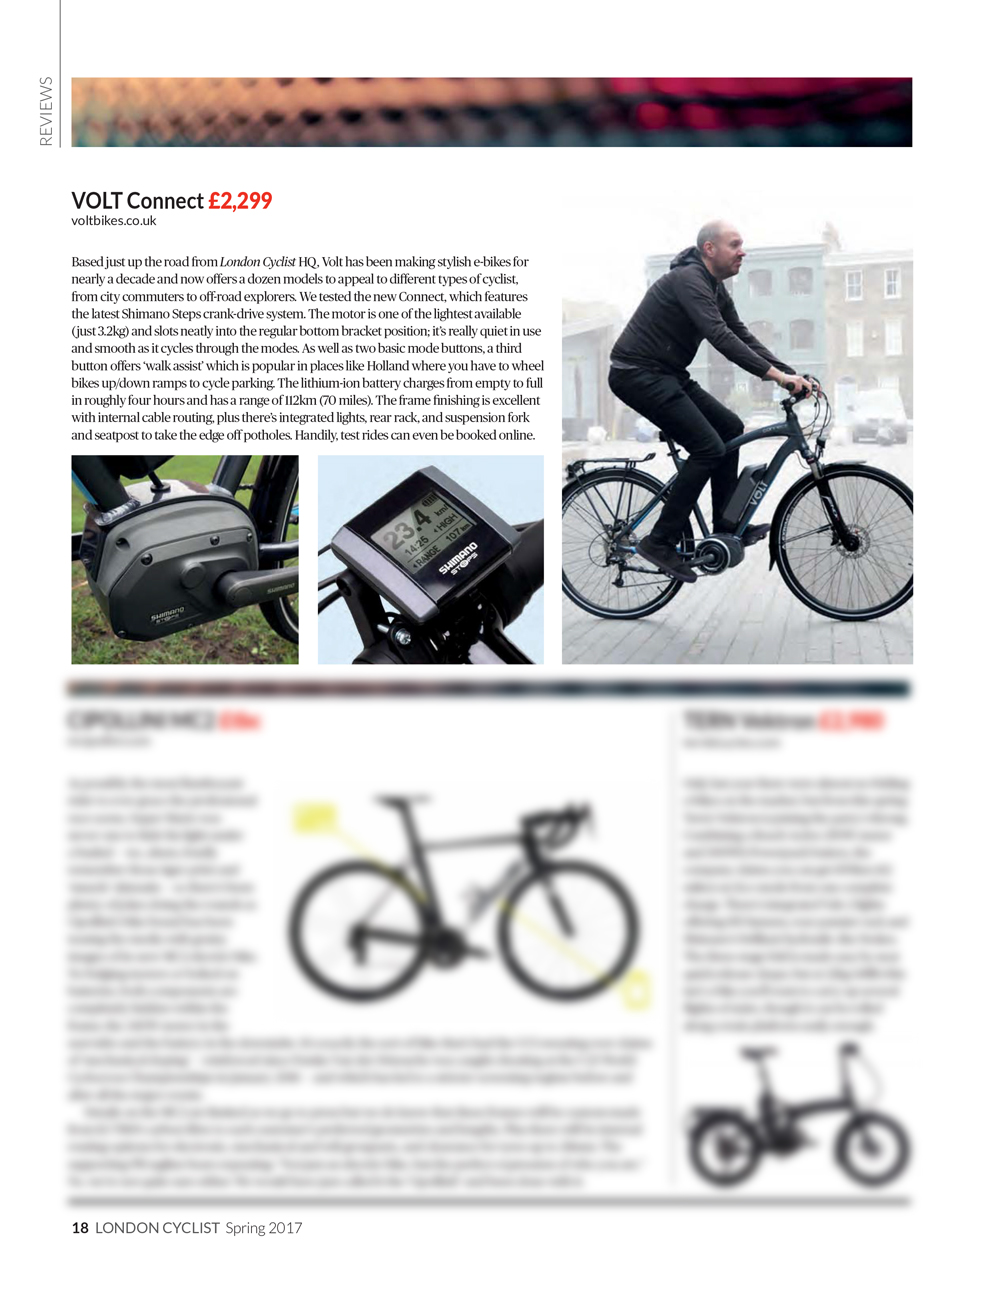 Cycling weekly Review